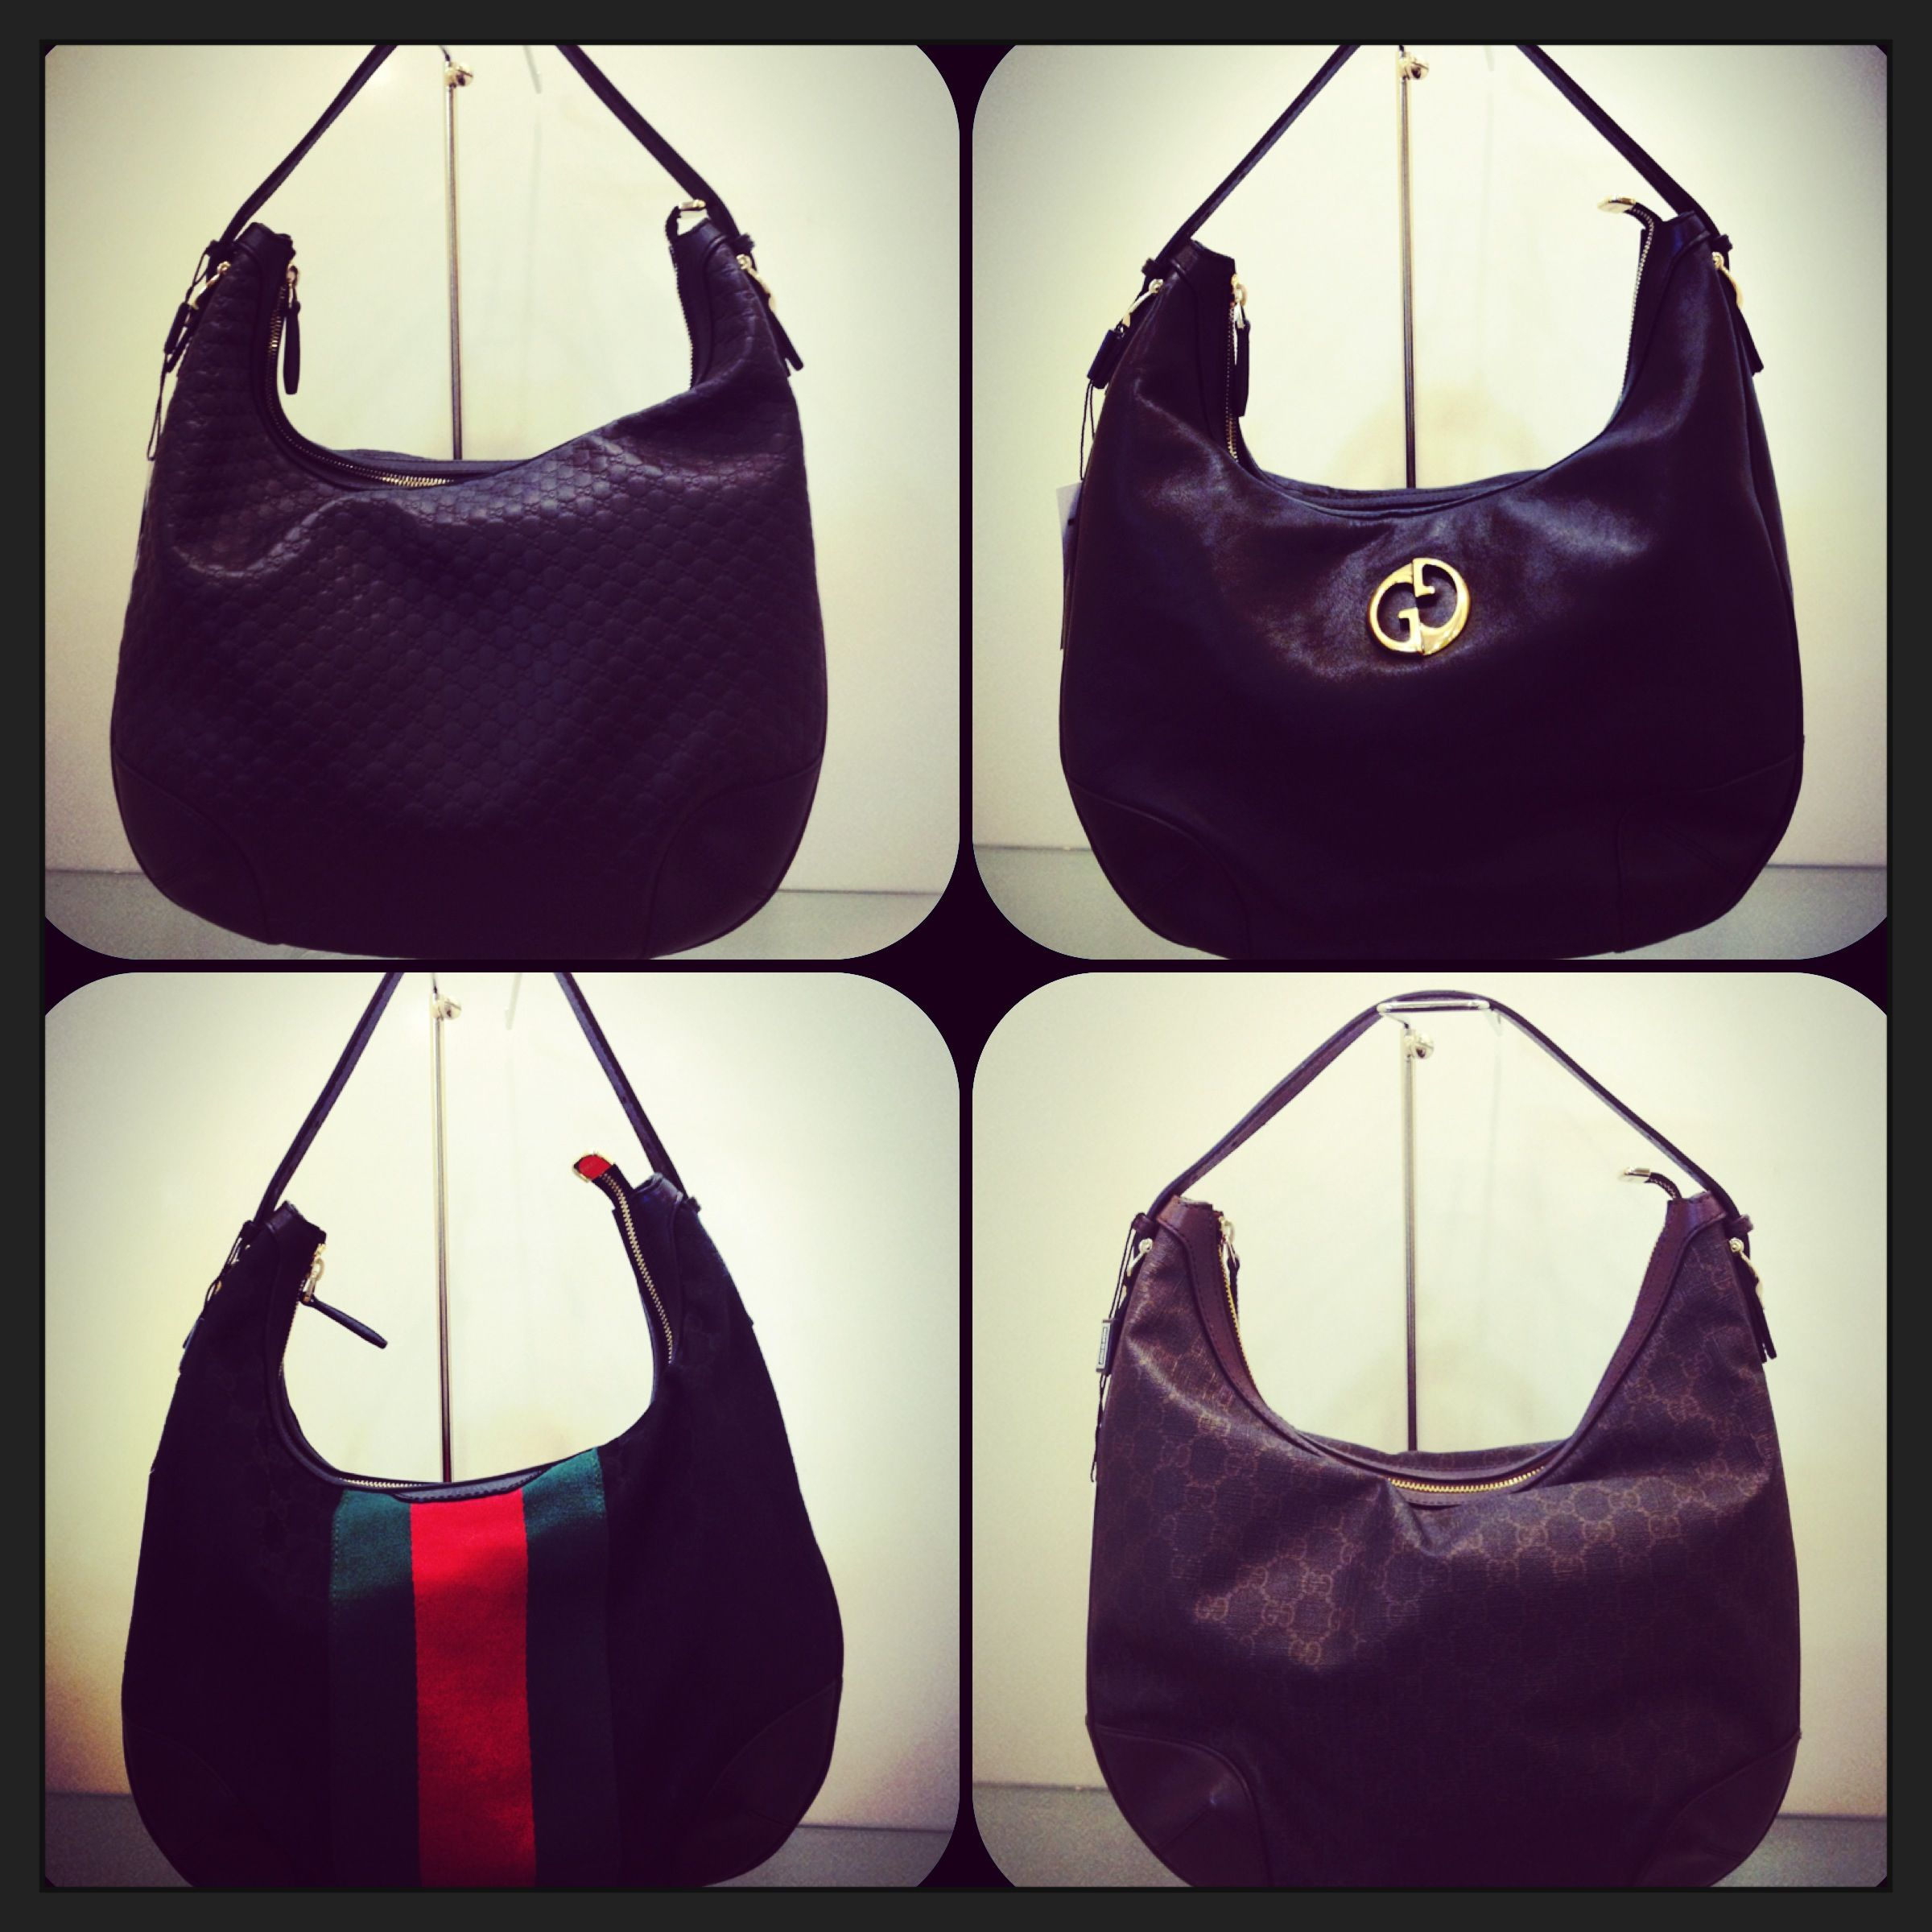 All #gucci #bags #hobo like Jackie Onassis style from $790! Find them on www.shopatvoi.com